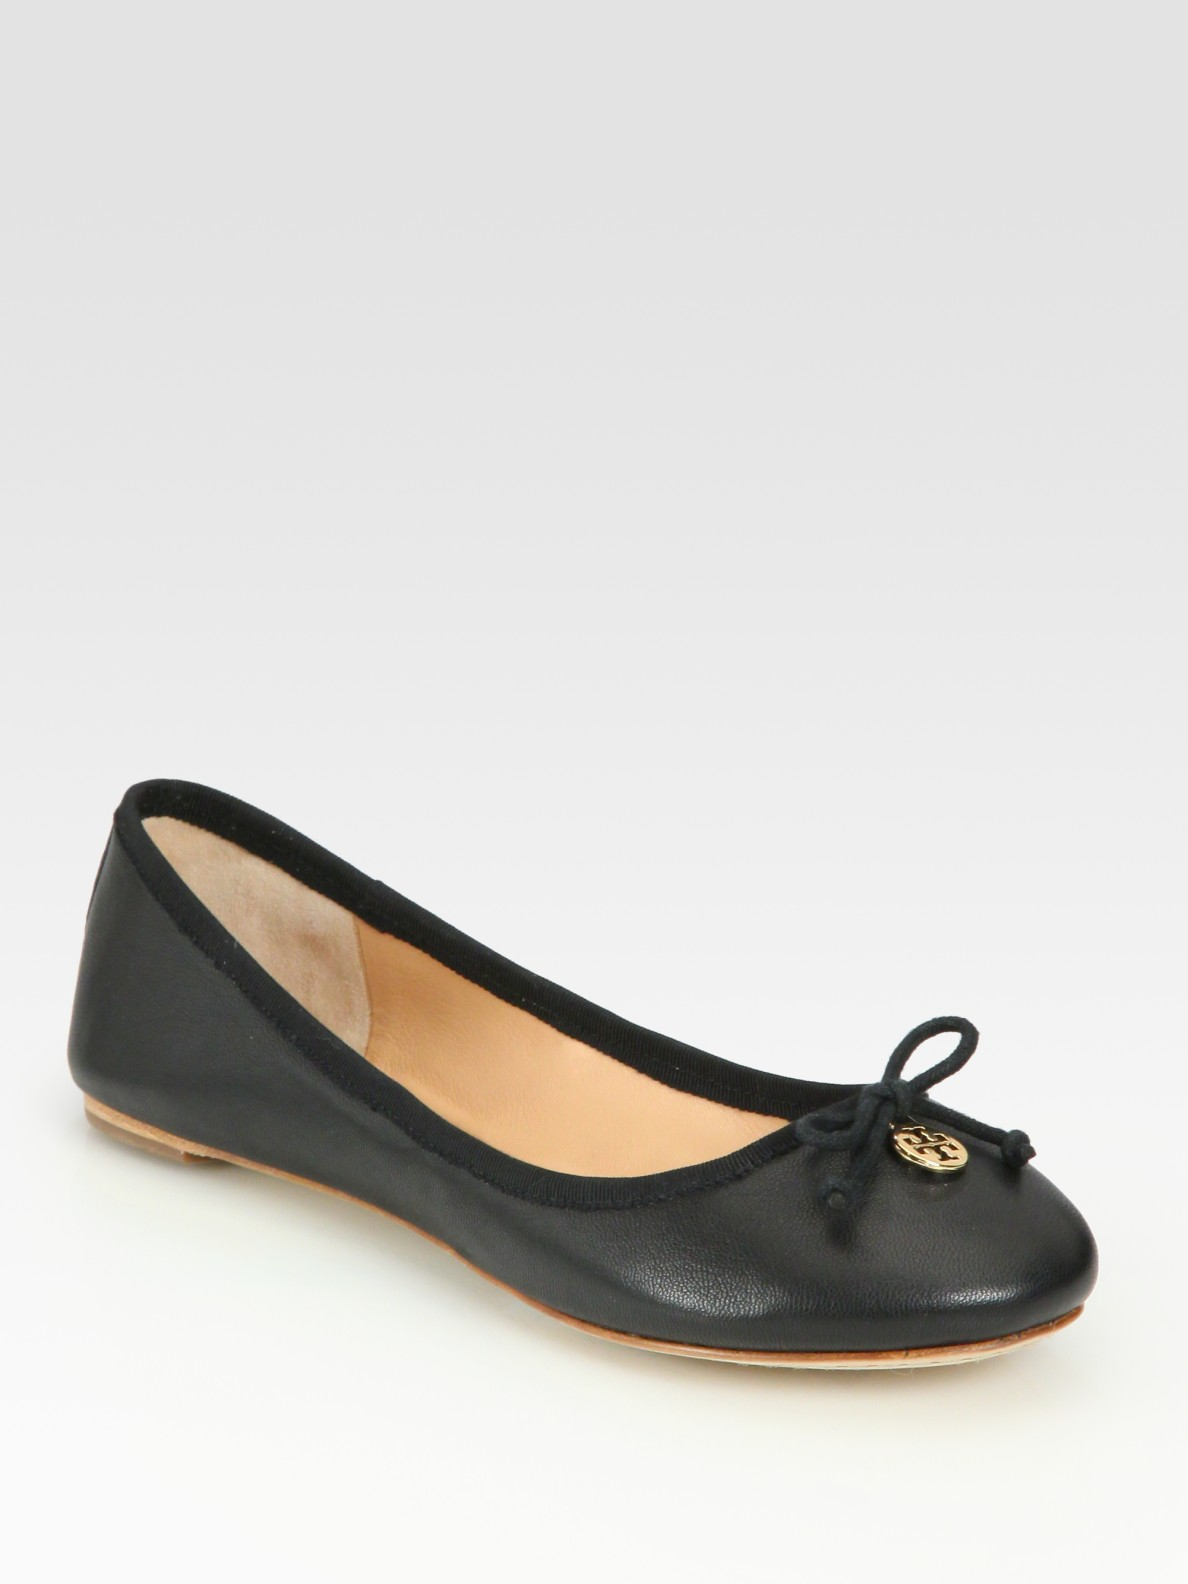 308652359fdf wholesale lyst tory burch chelsea leather bow logo ballet flats in black  51500 243ed